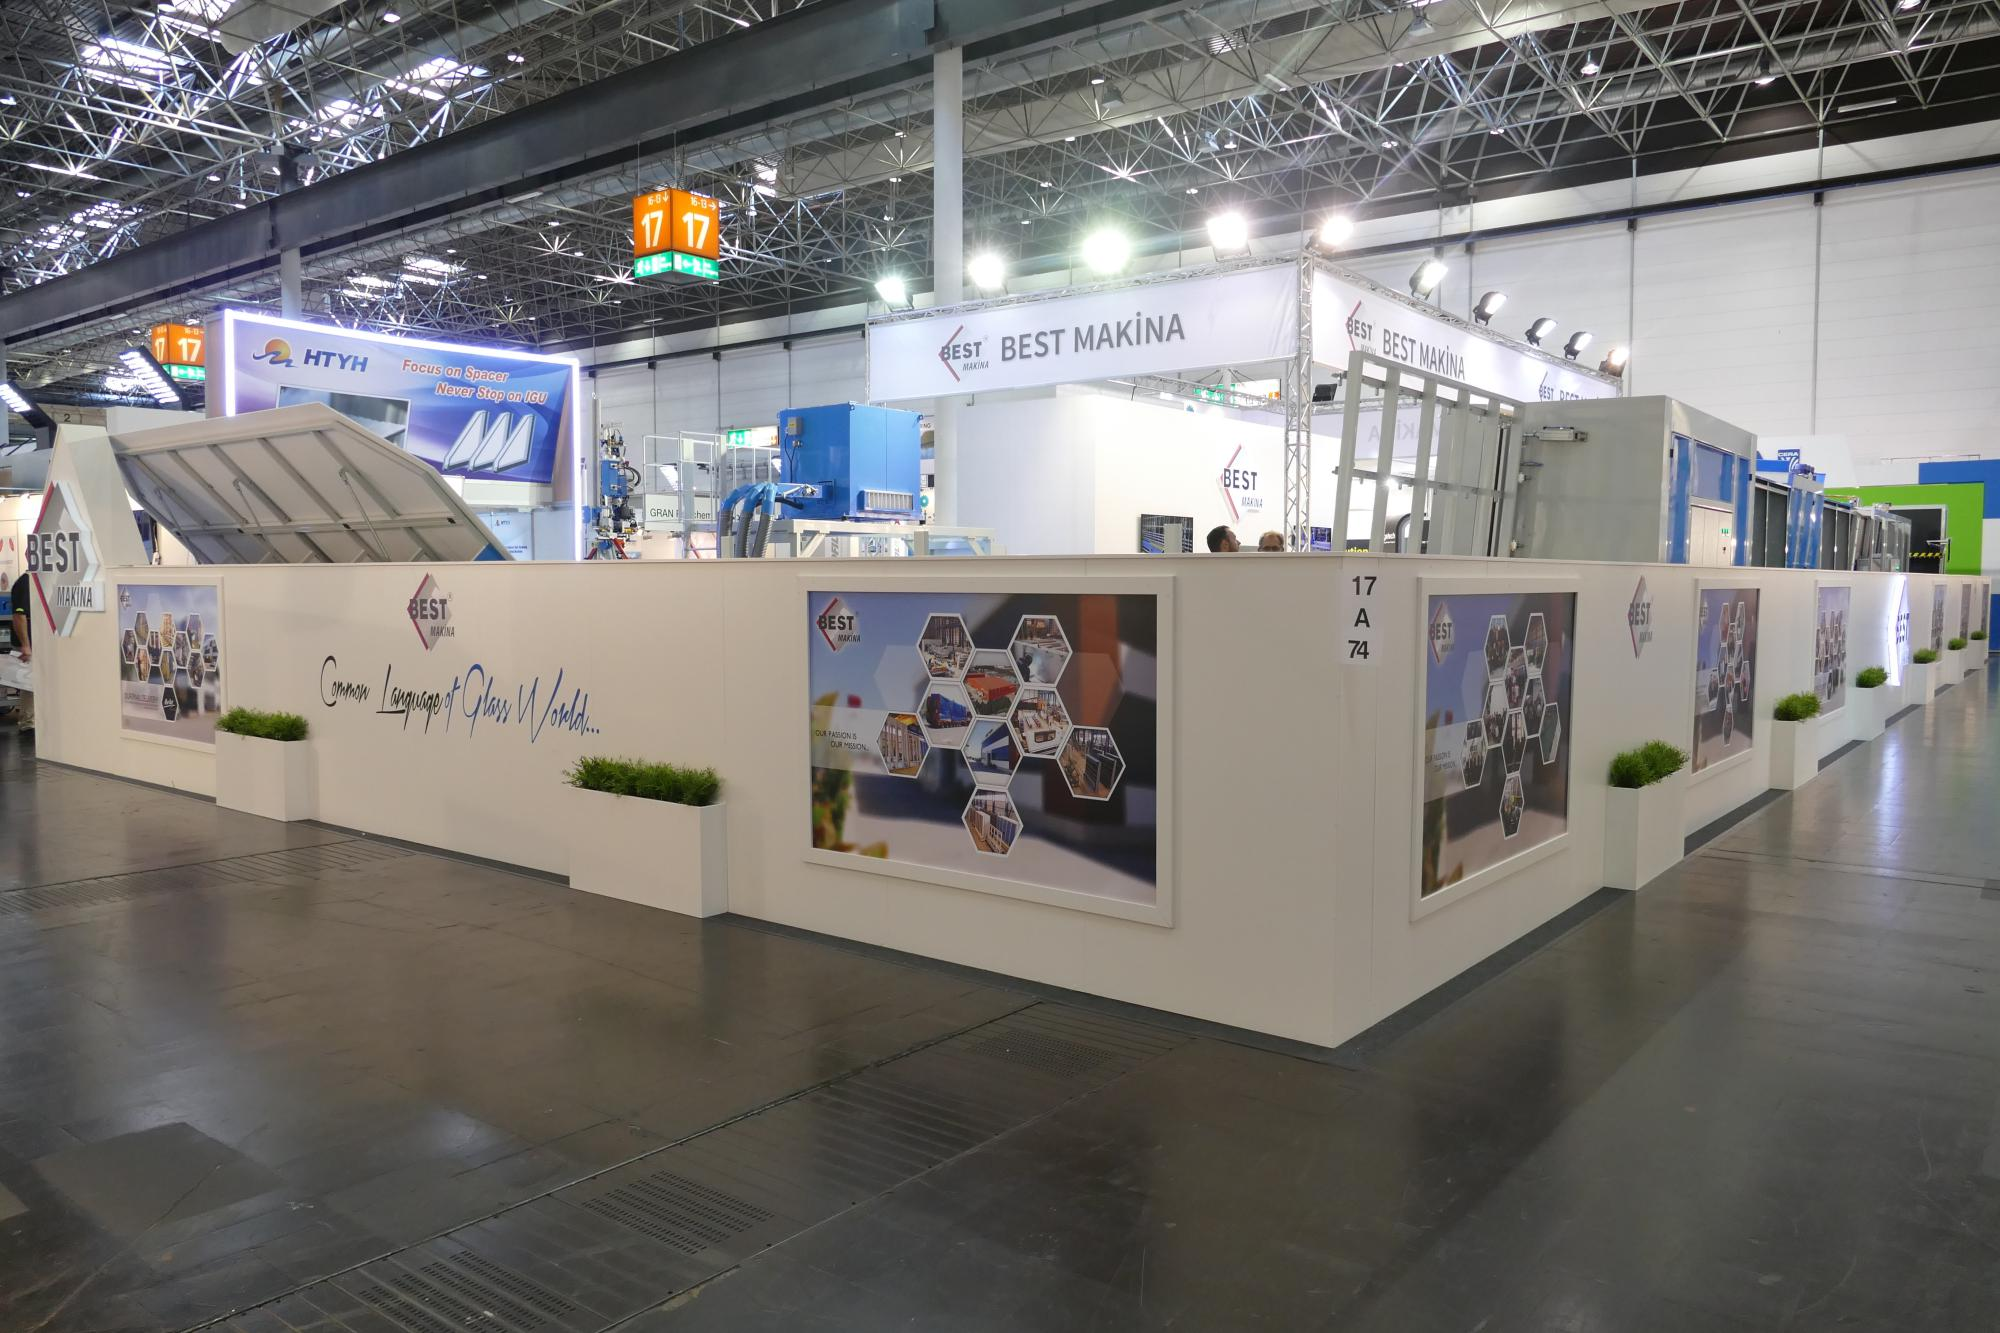 Exhibition Booth In Spanish : Invitation to our stand in glasstec 2018 exhibition bestmakina.com